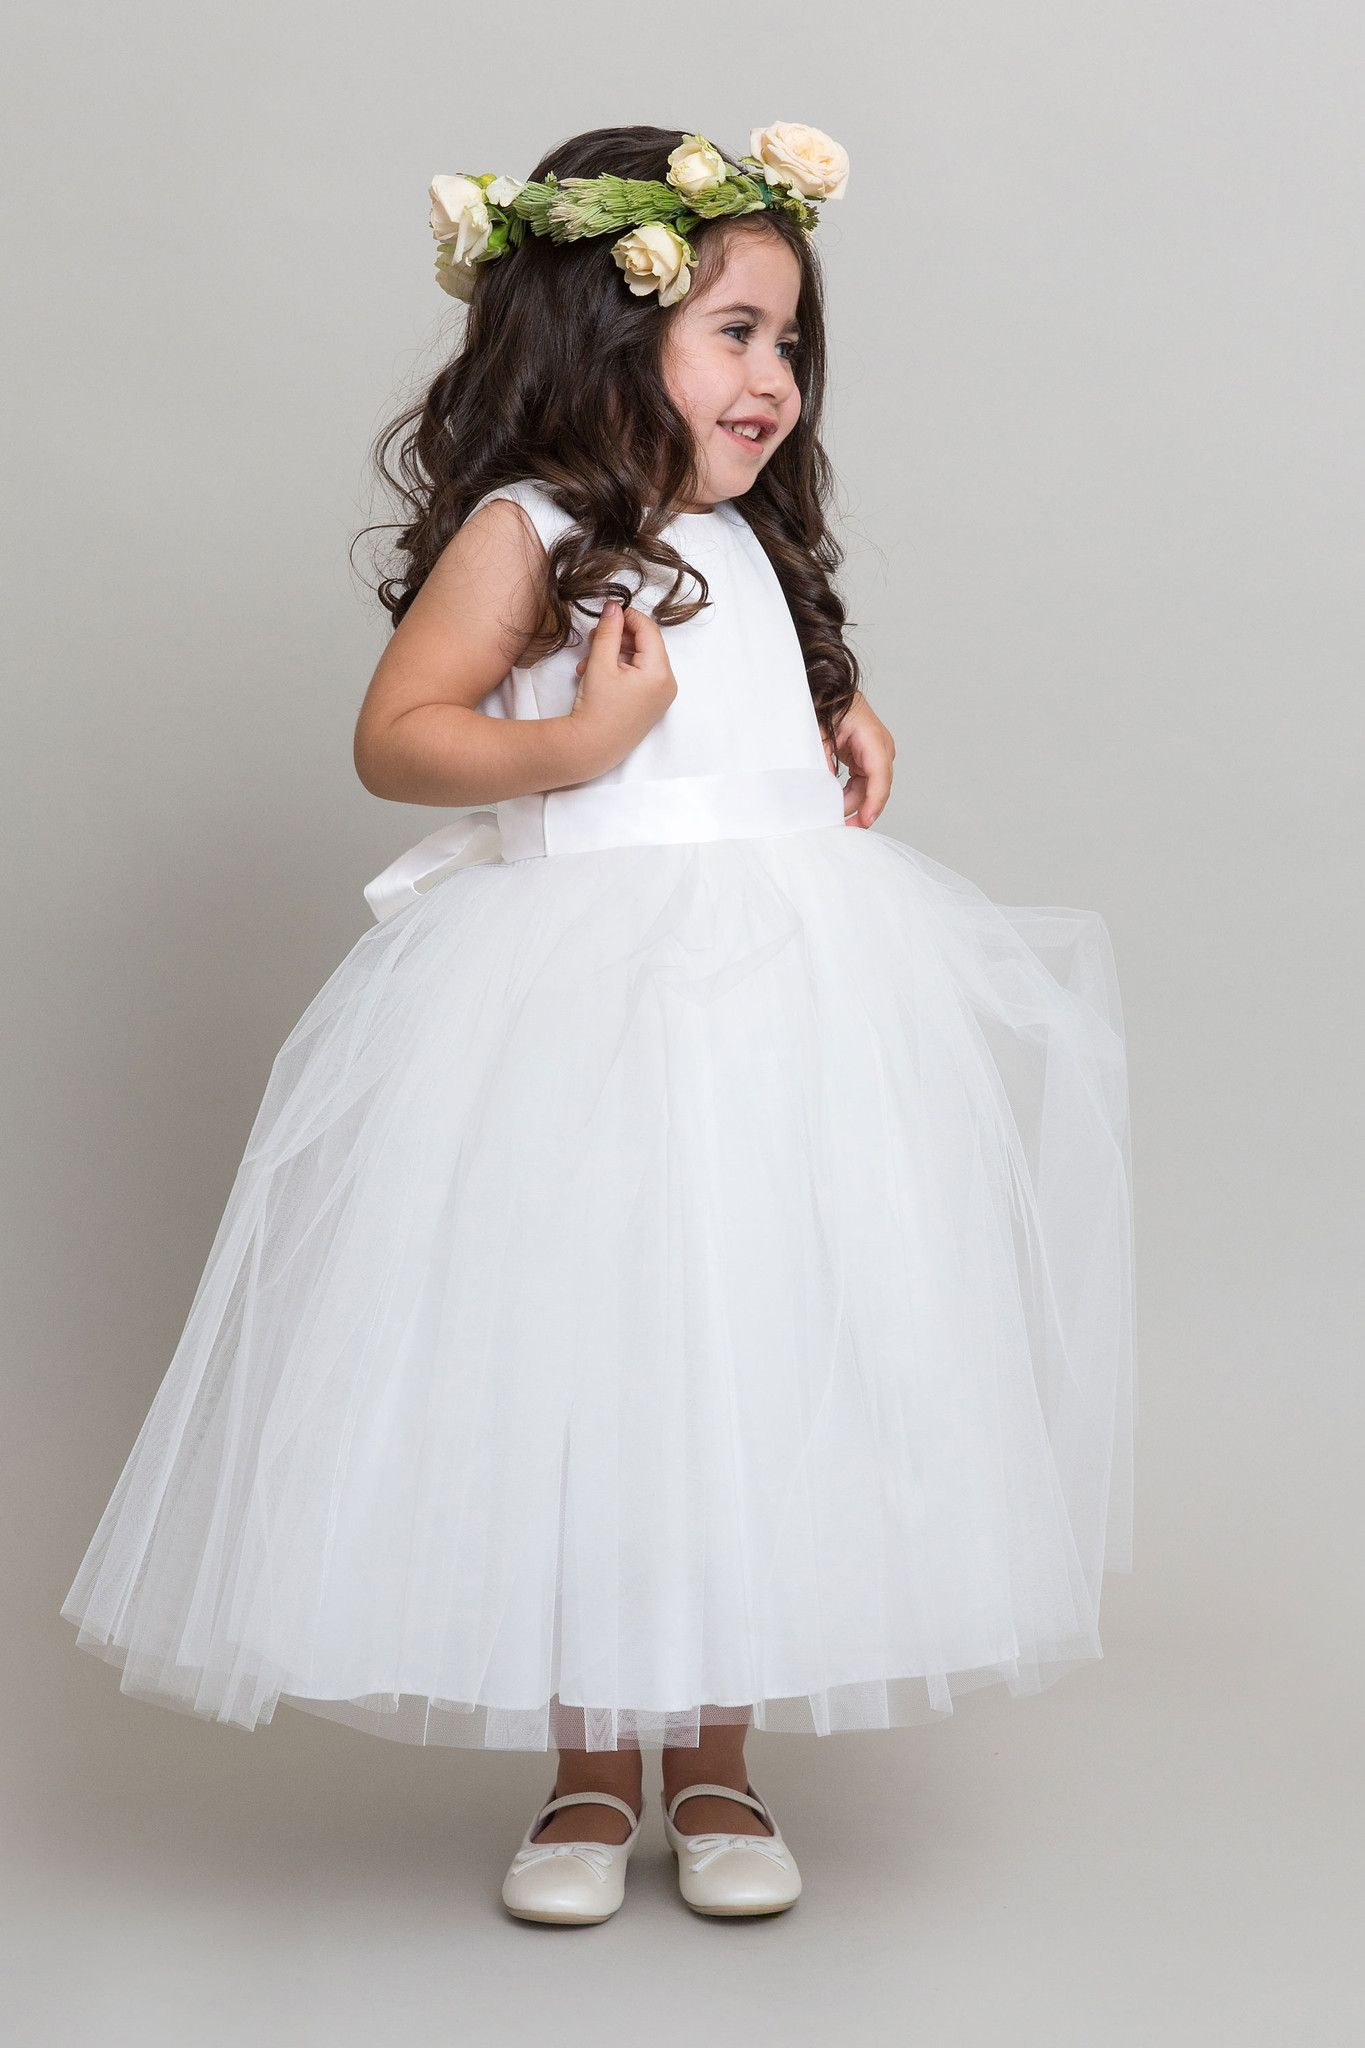 'Wish Upon A Princess' dress styled with a coloured sash